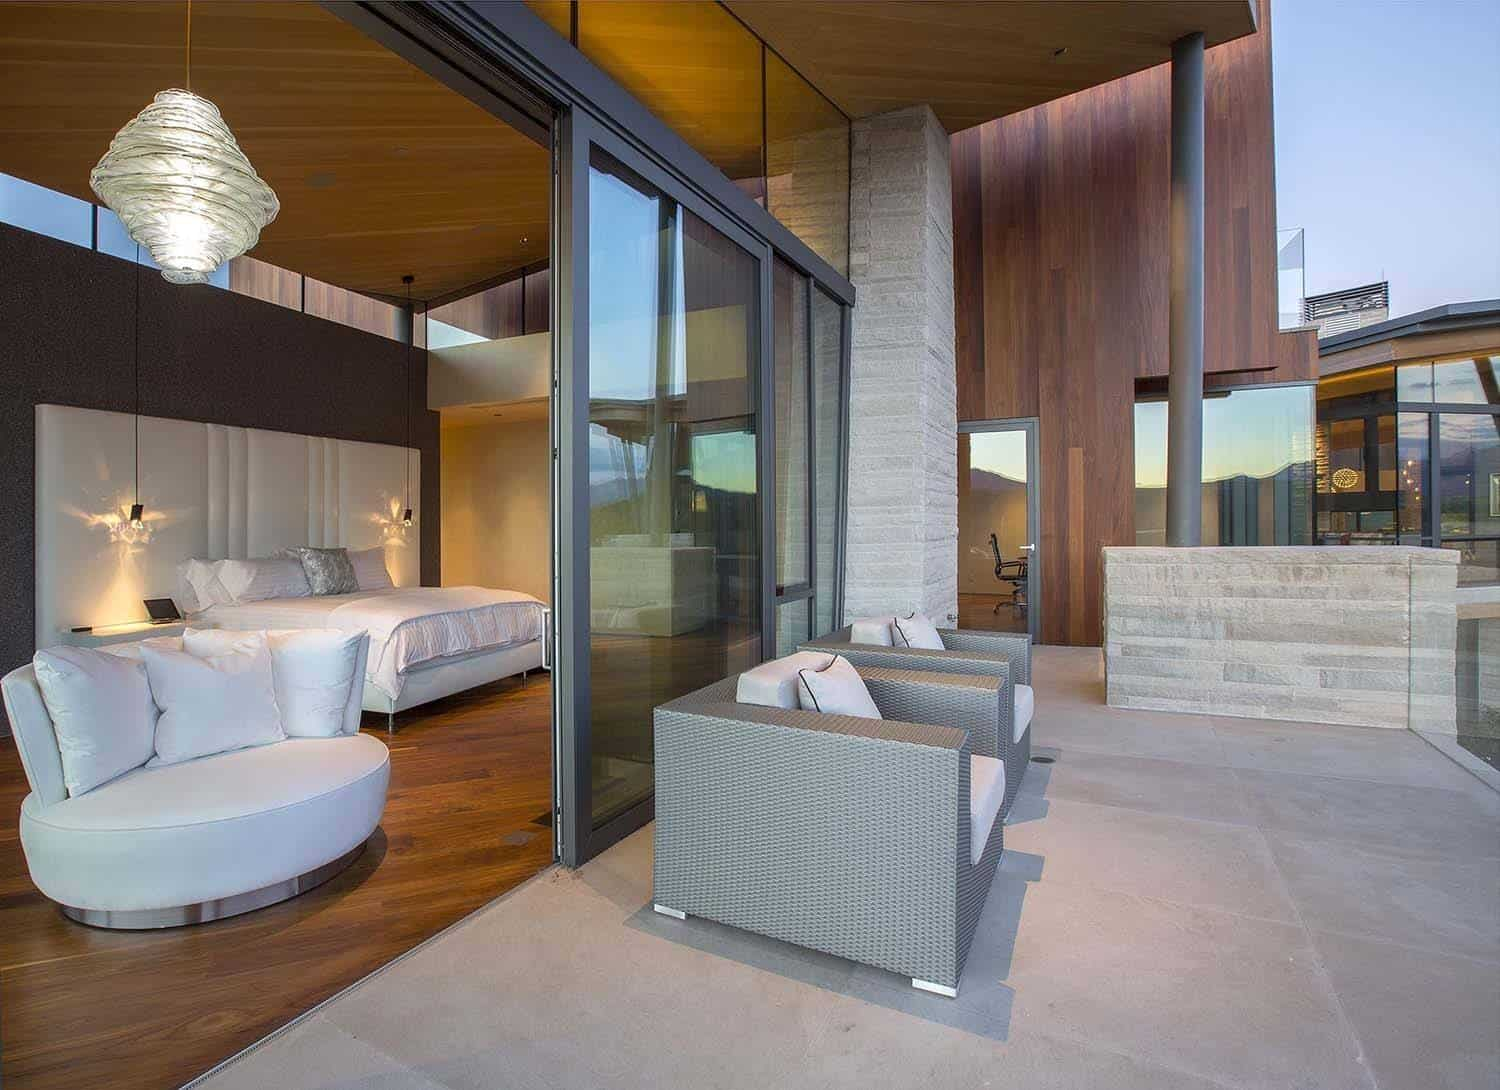 Modern-Residence-Colorado-Poss Architecture-32-1 Kindesign